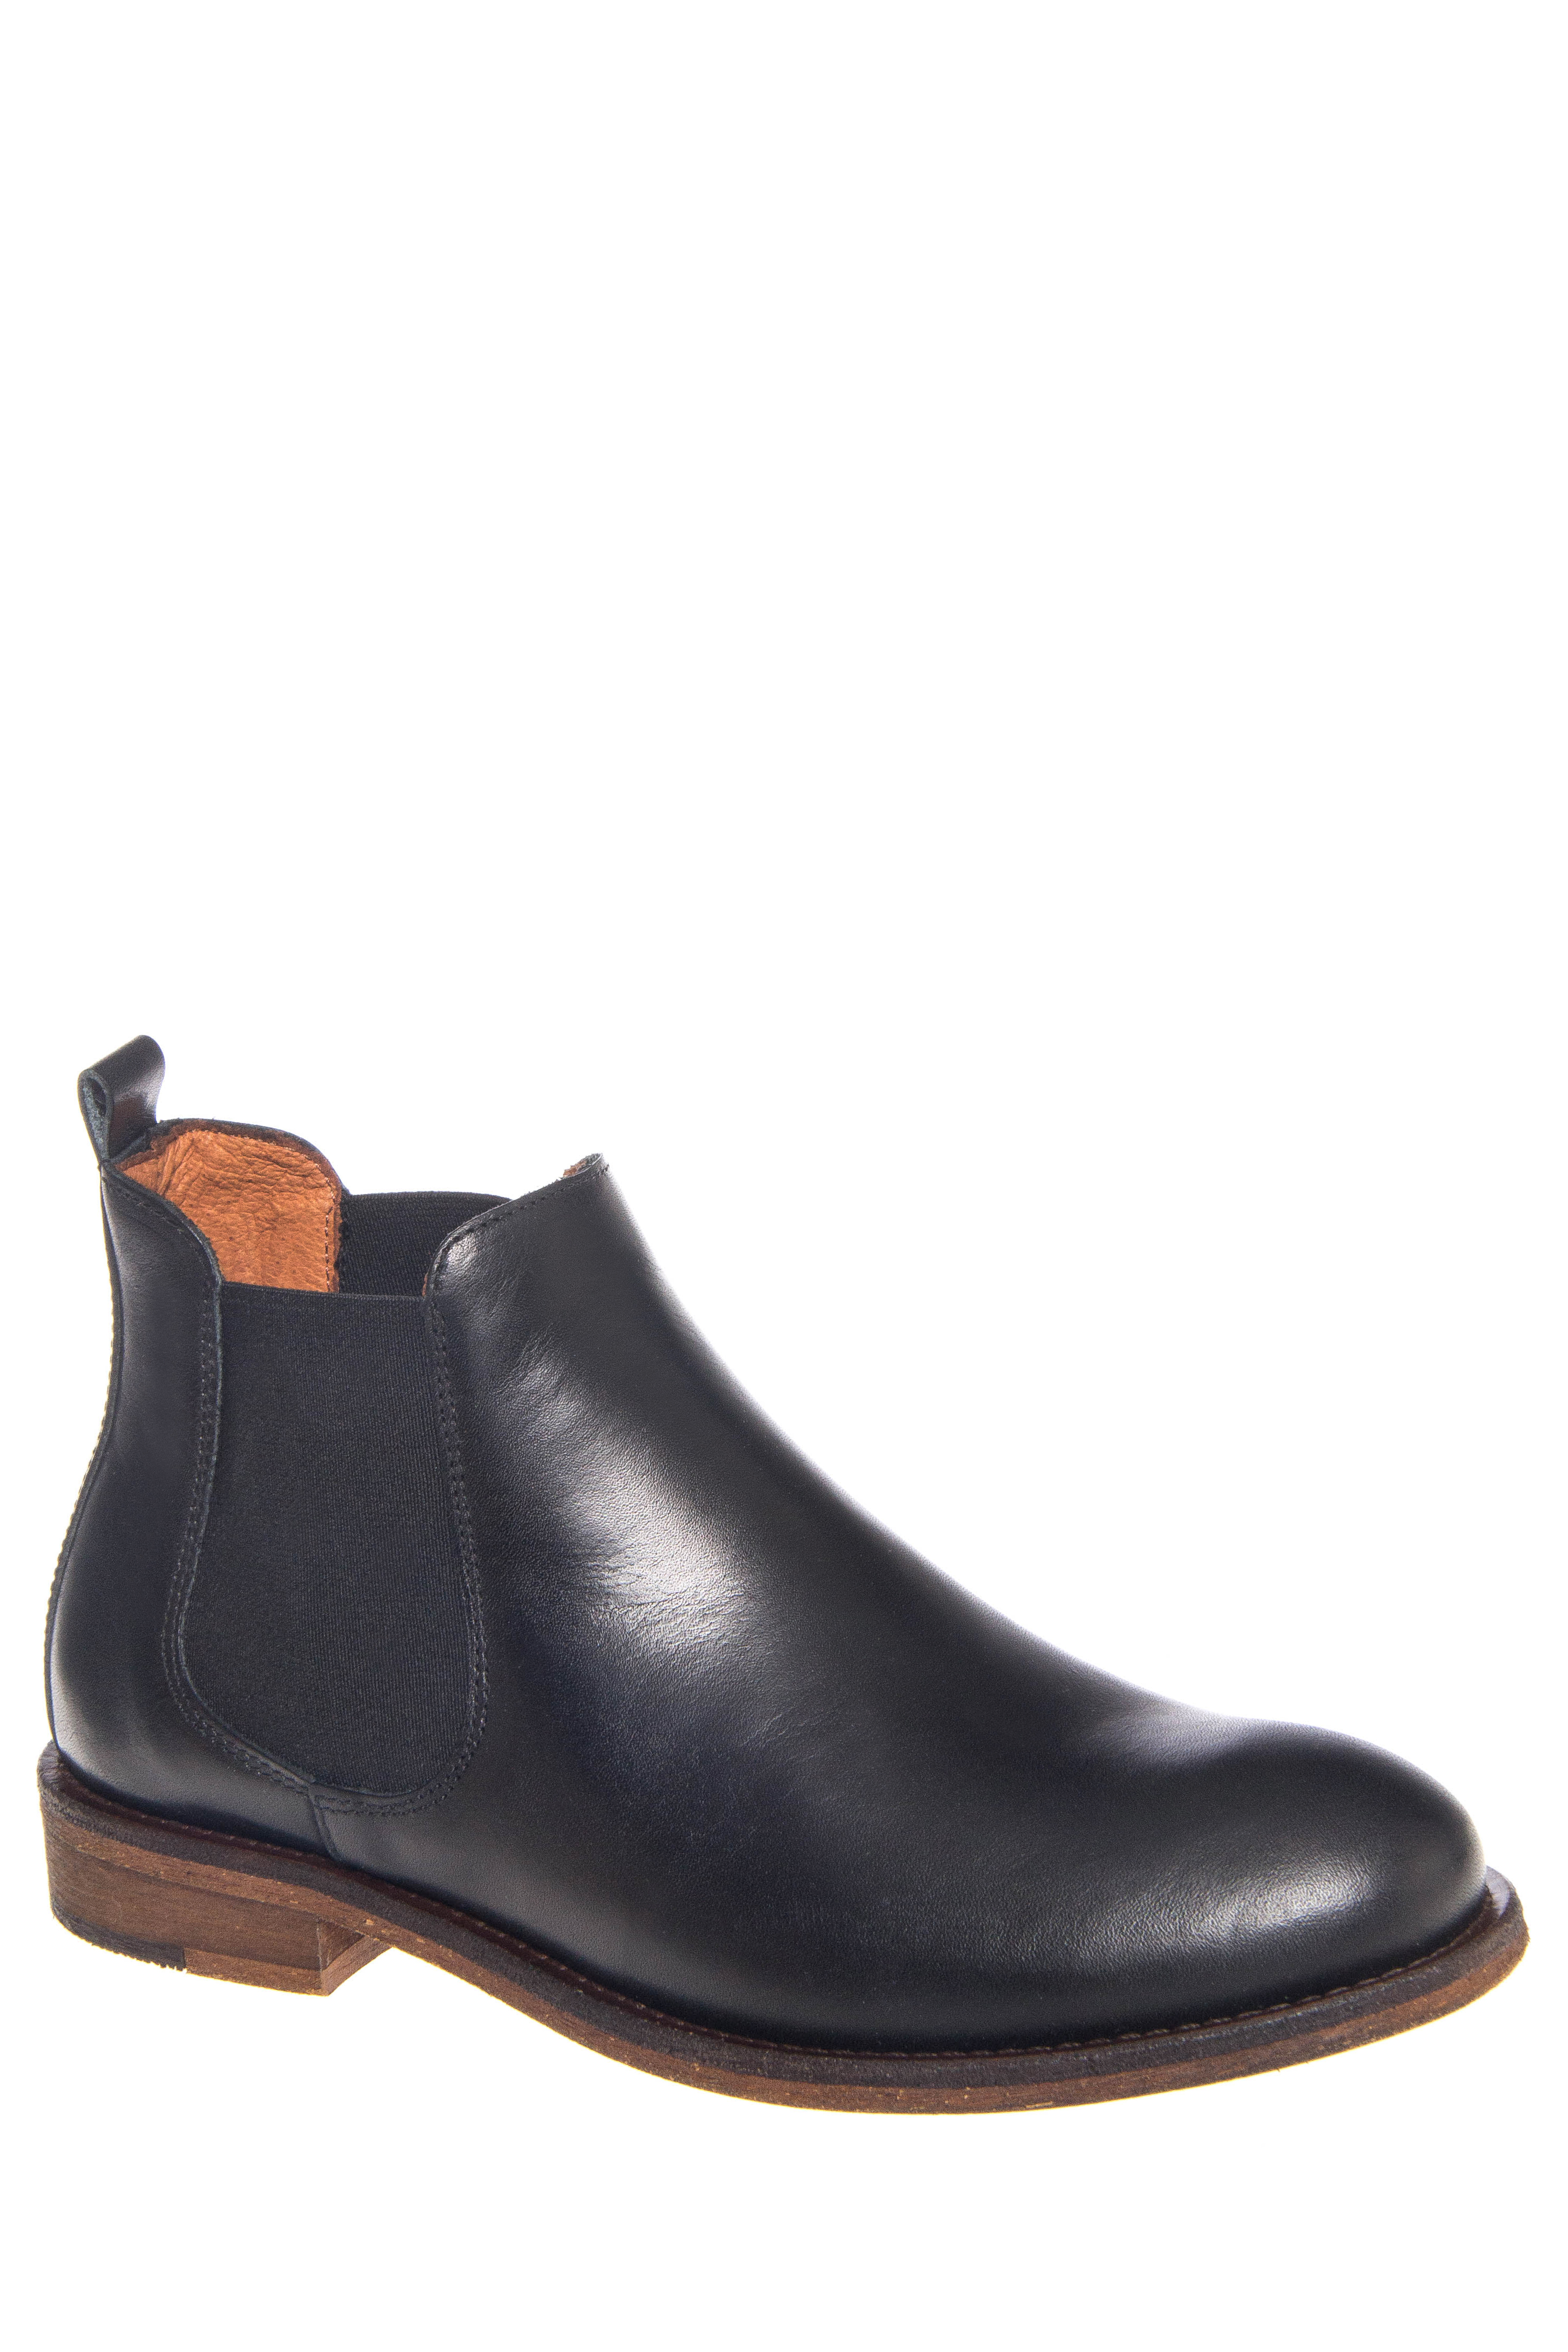 Wolverine 1883 Jean Chelsea Boots - Black